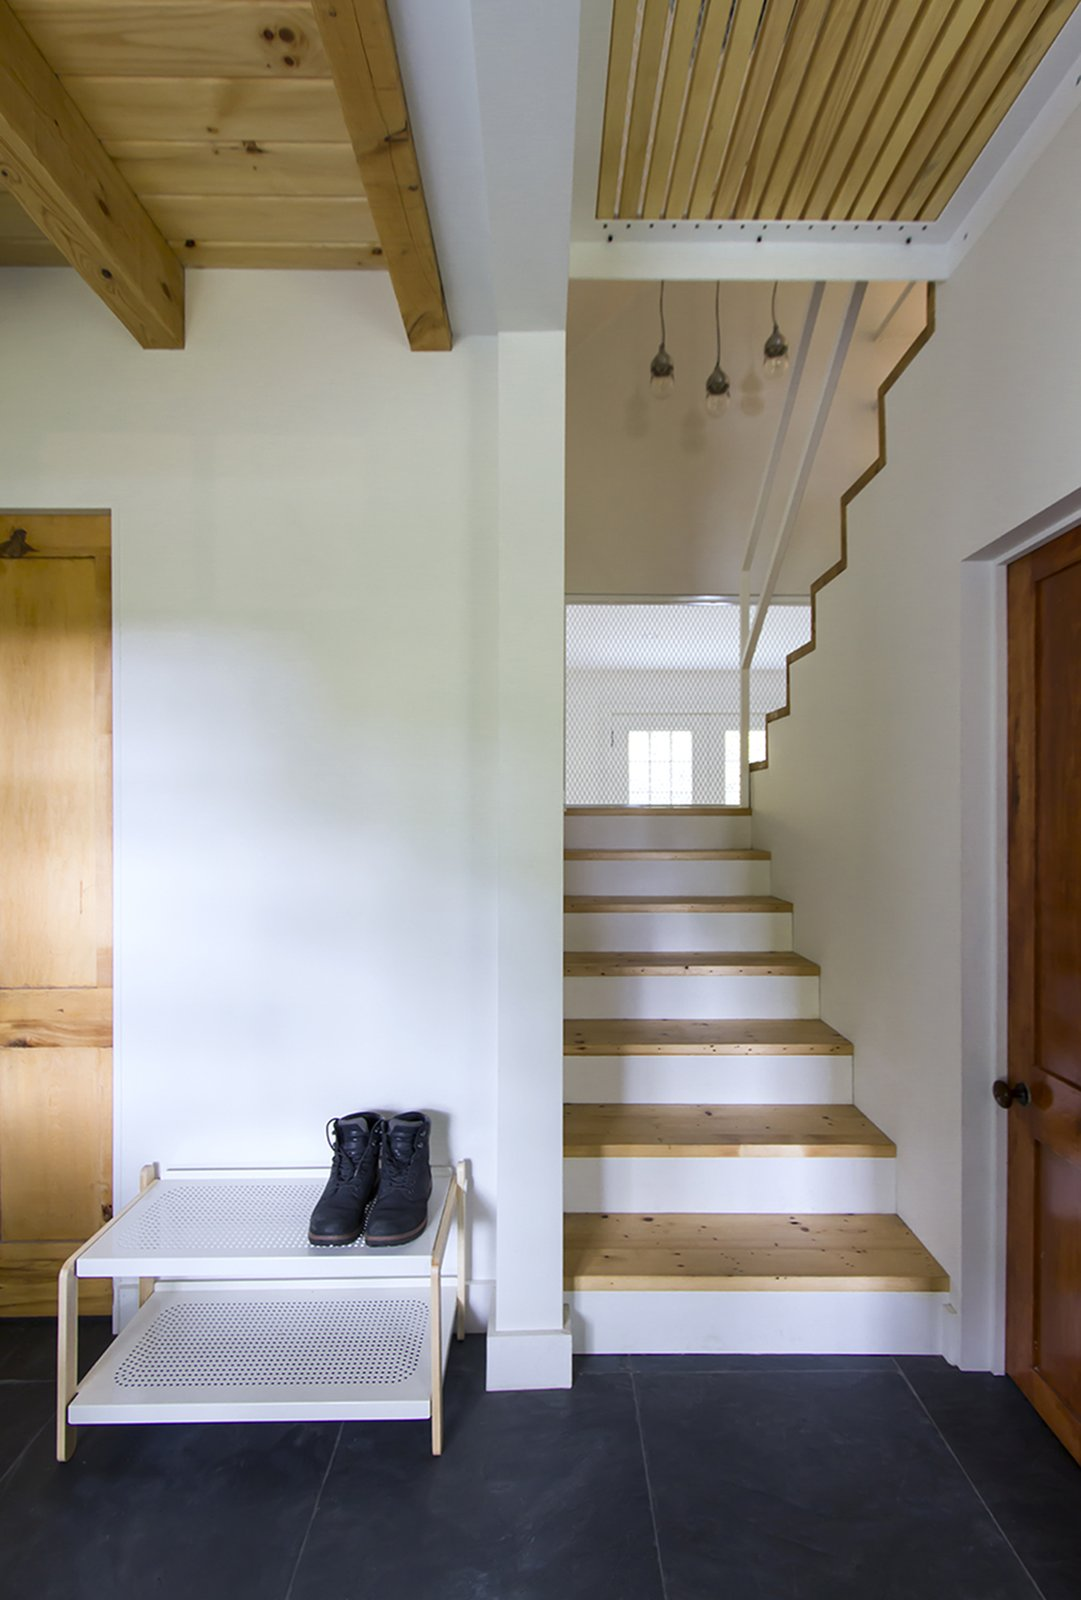 The staircase connects the ground floor corridor to the second floor. The small walkway separates the master privates appartement from the rest of the house. Tagged: Staircase, Metal Tread, Wood Tread, and Metal Railing.  L'Eau Vive by FÉLIX & Co.